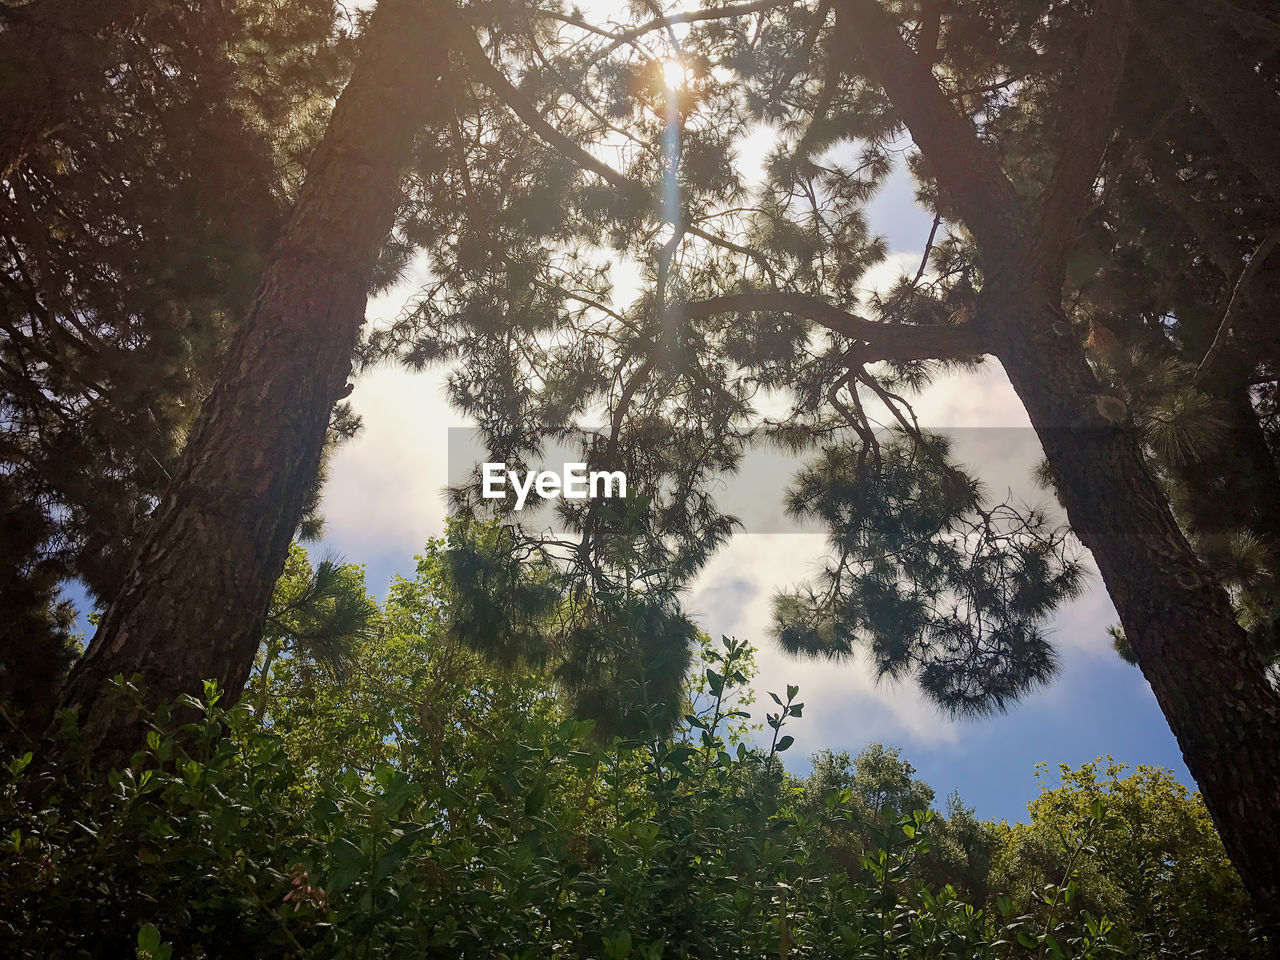 LOW ANGLE VIEW OF TREES AGAINST SKY IN FOREST